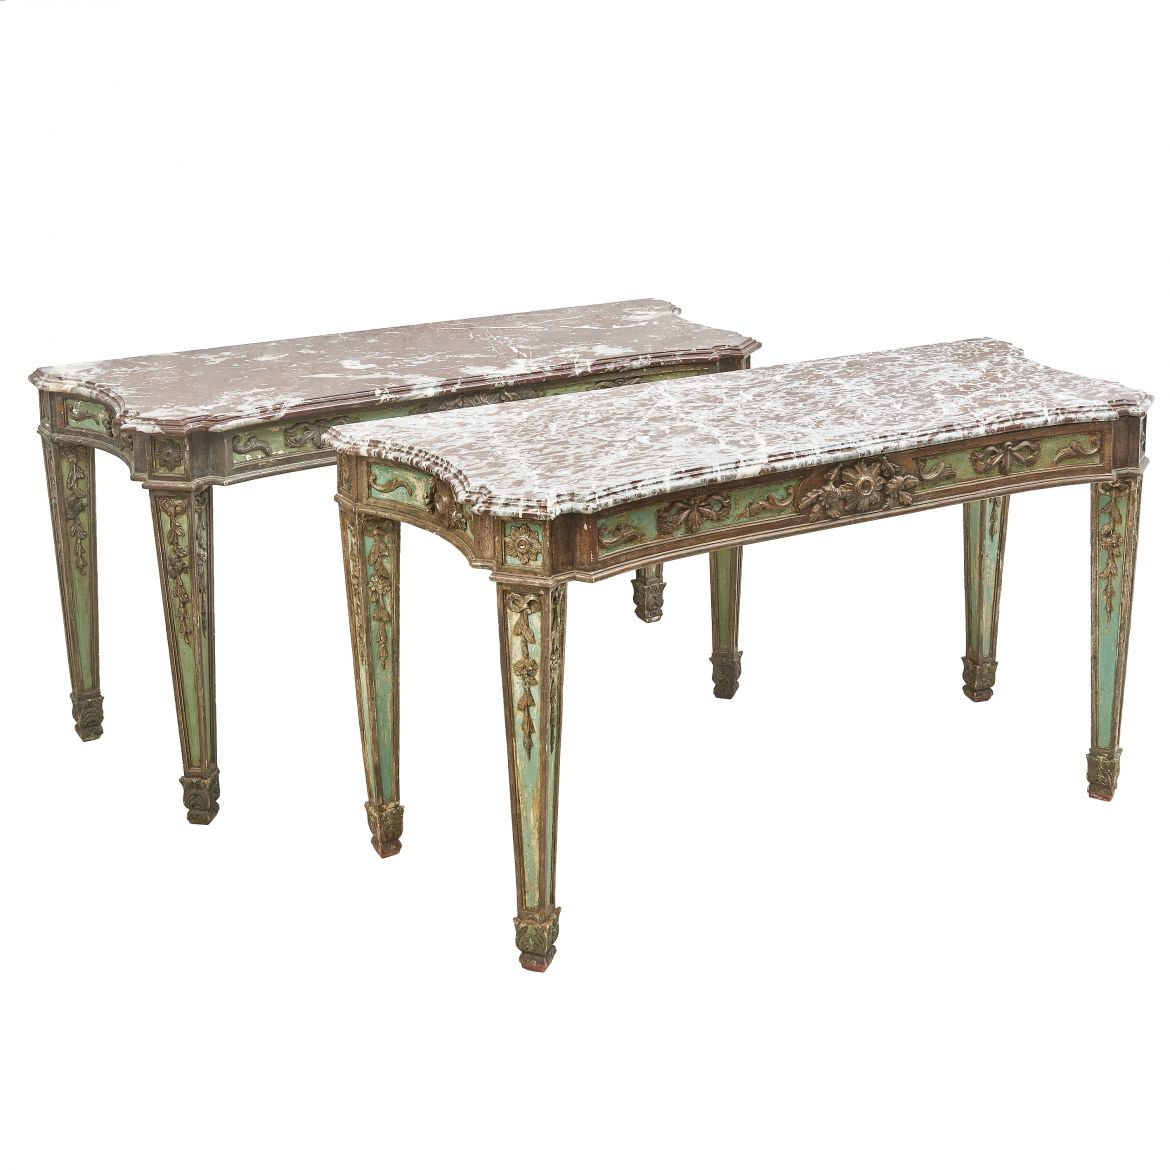 Pair Italian Neoclassical Console Tables With Variegated Marble Tops